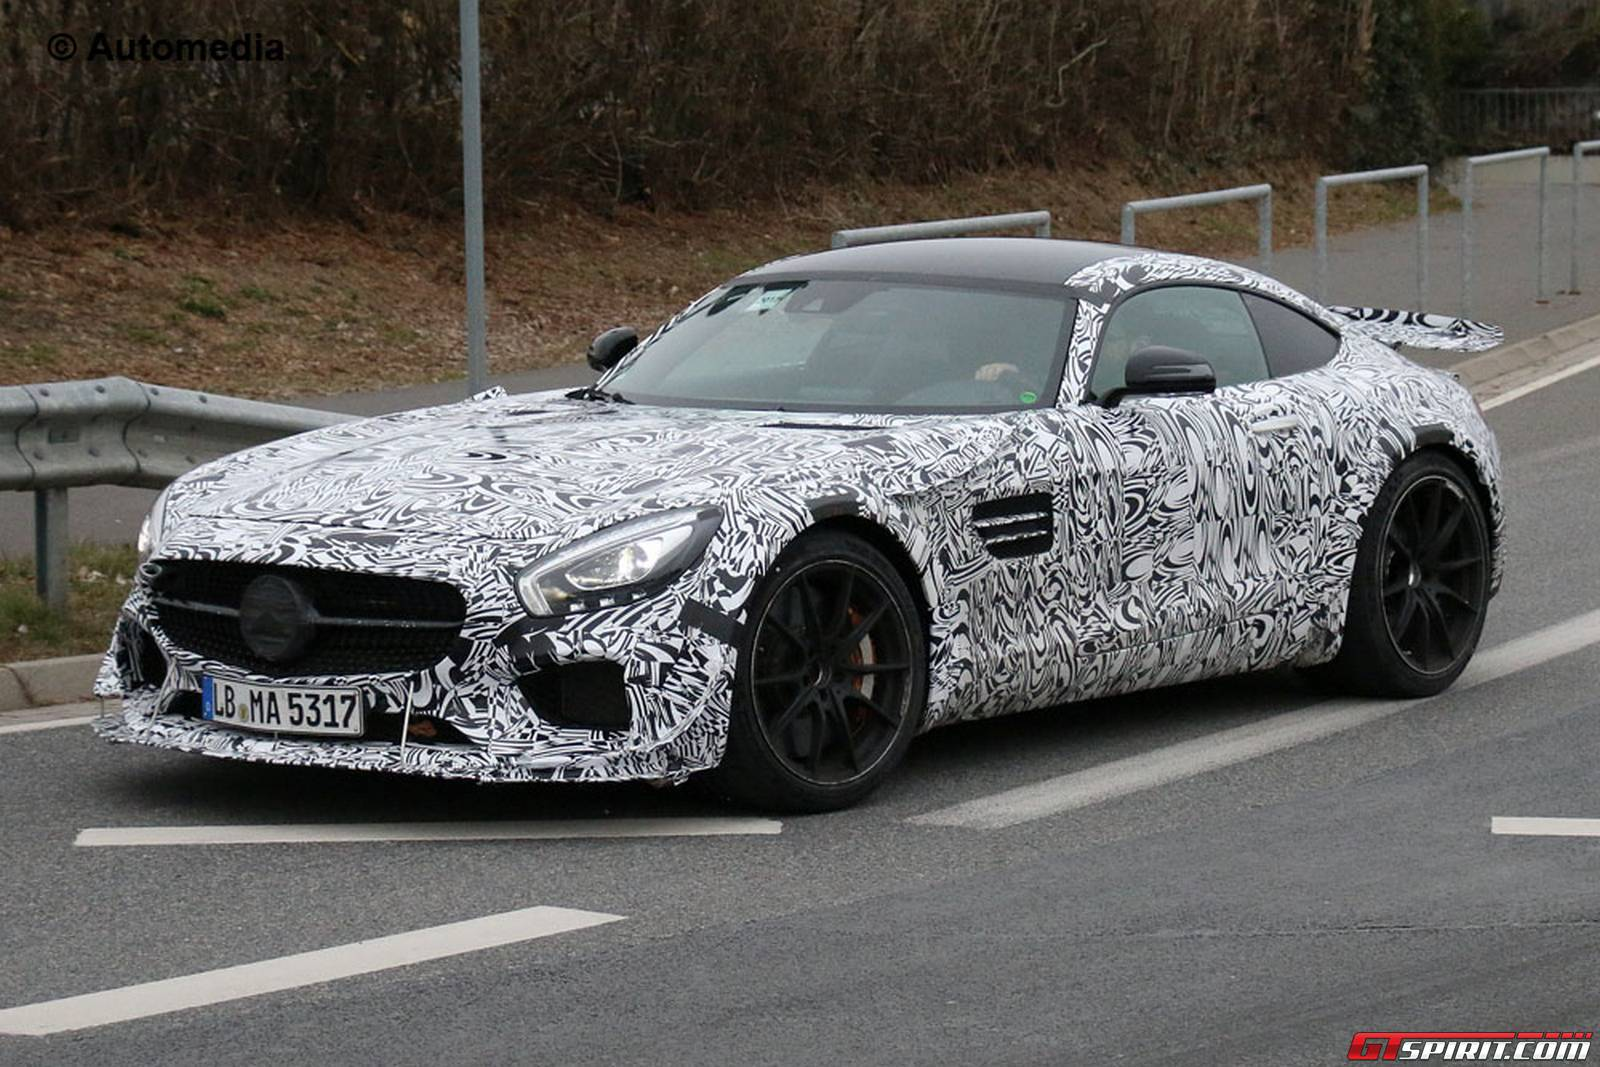 Mercedes Amg Gt3 Road Car Nurburgring Spy Shots